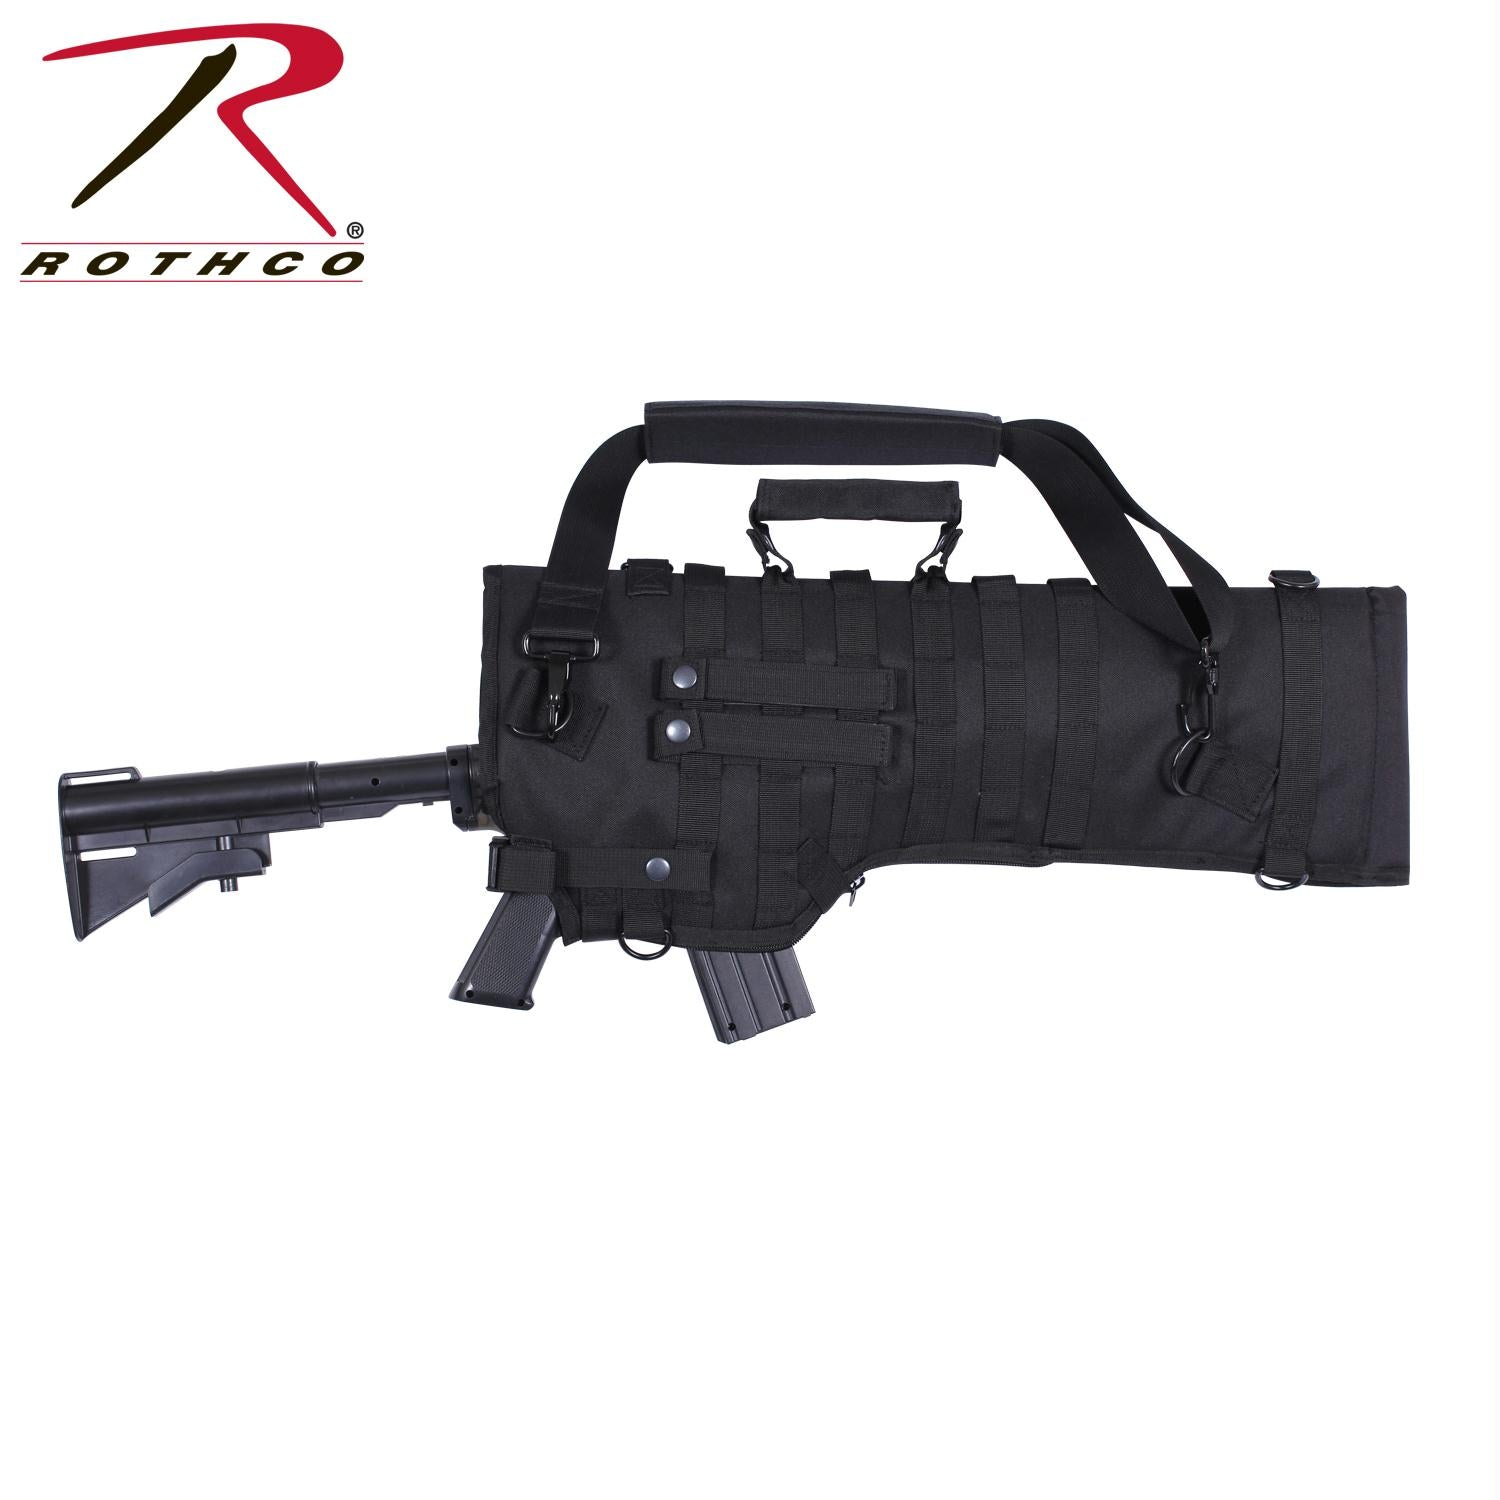 Rothco Tactical Rifle Scabbard - Black